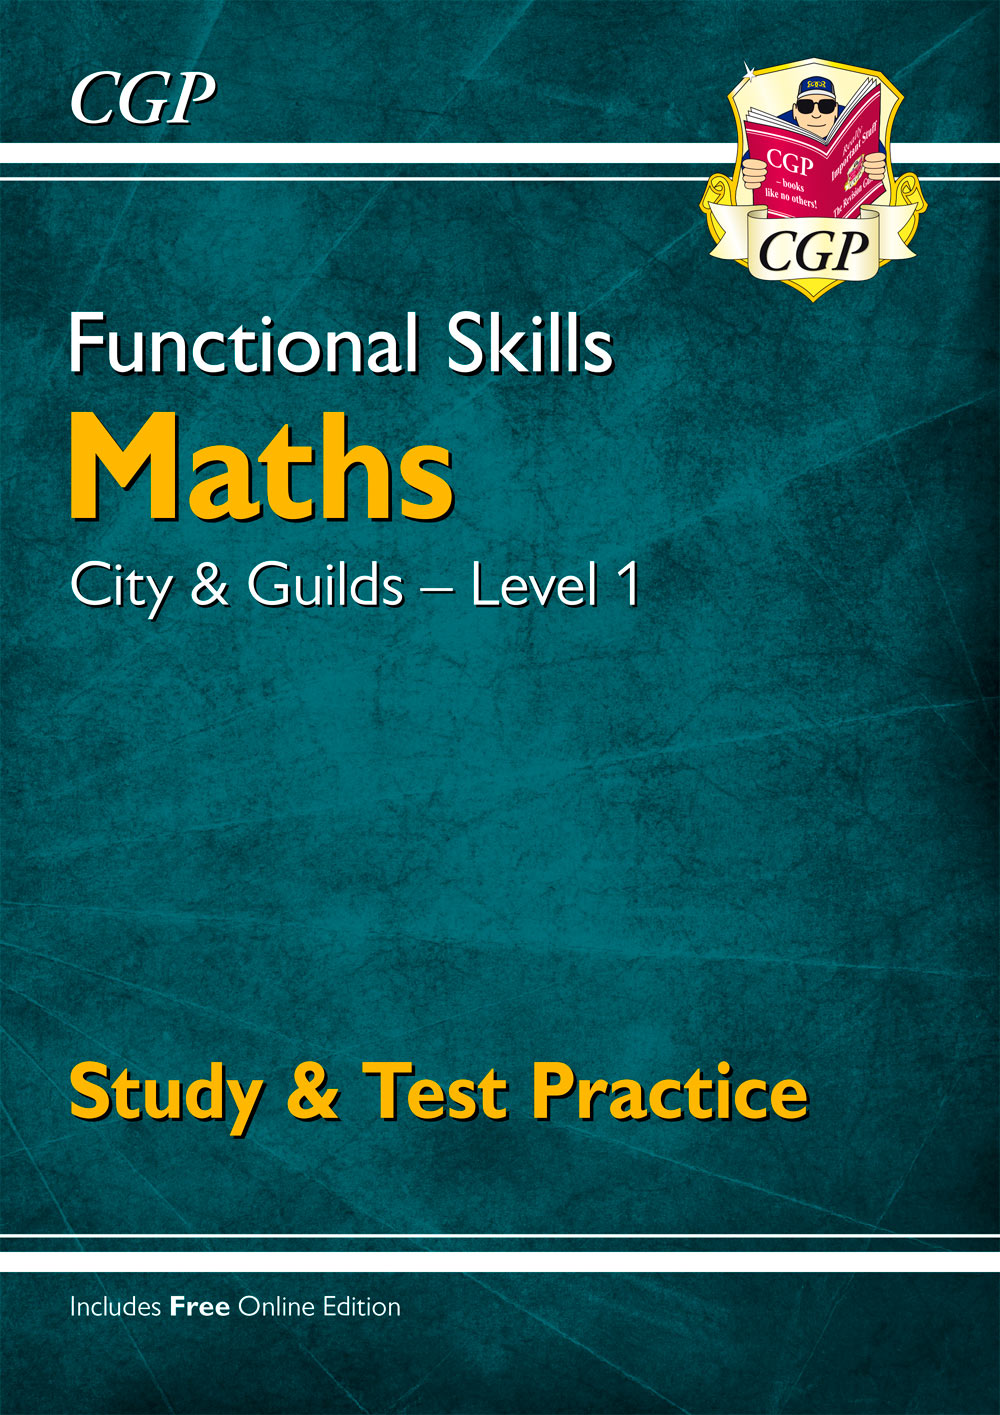 M1CGSRA1 - New Functional Skills Maths: City & Guilds Level 1 - Study & Test Practice (for 2019 & be